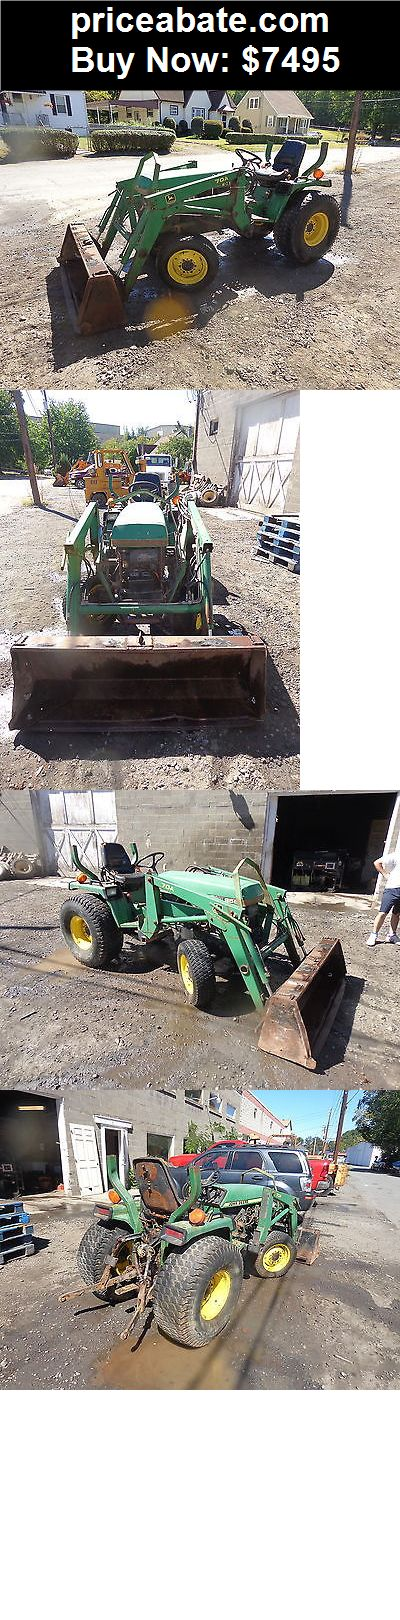 Heavy-Equipments: John Deere 955 Compact Utility Tractor w/ 70A Loader NICE! RUNS EXC VIDEO! - BUY IT NOW ONLY $7495